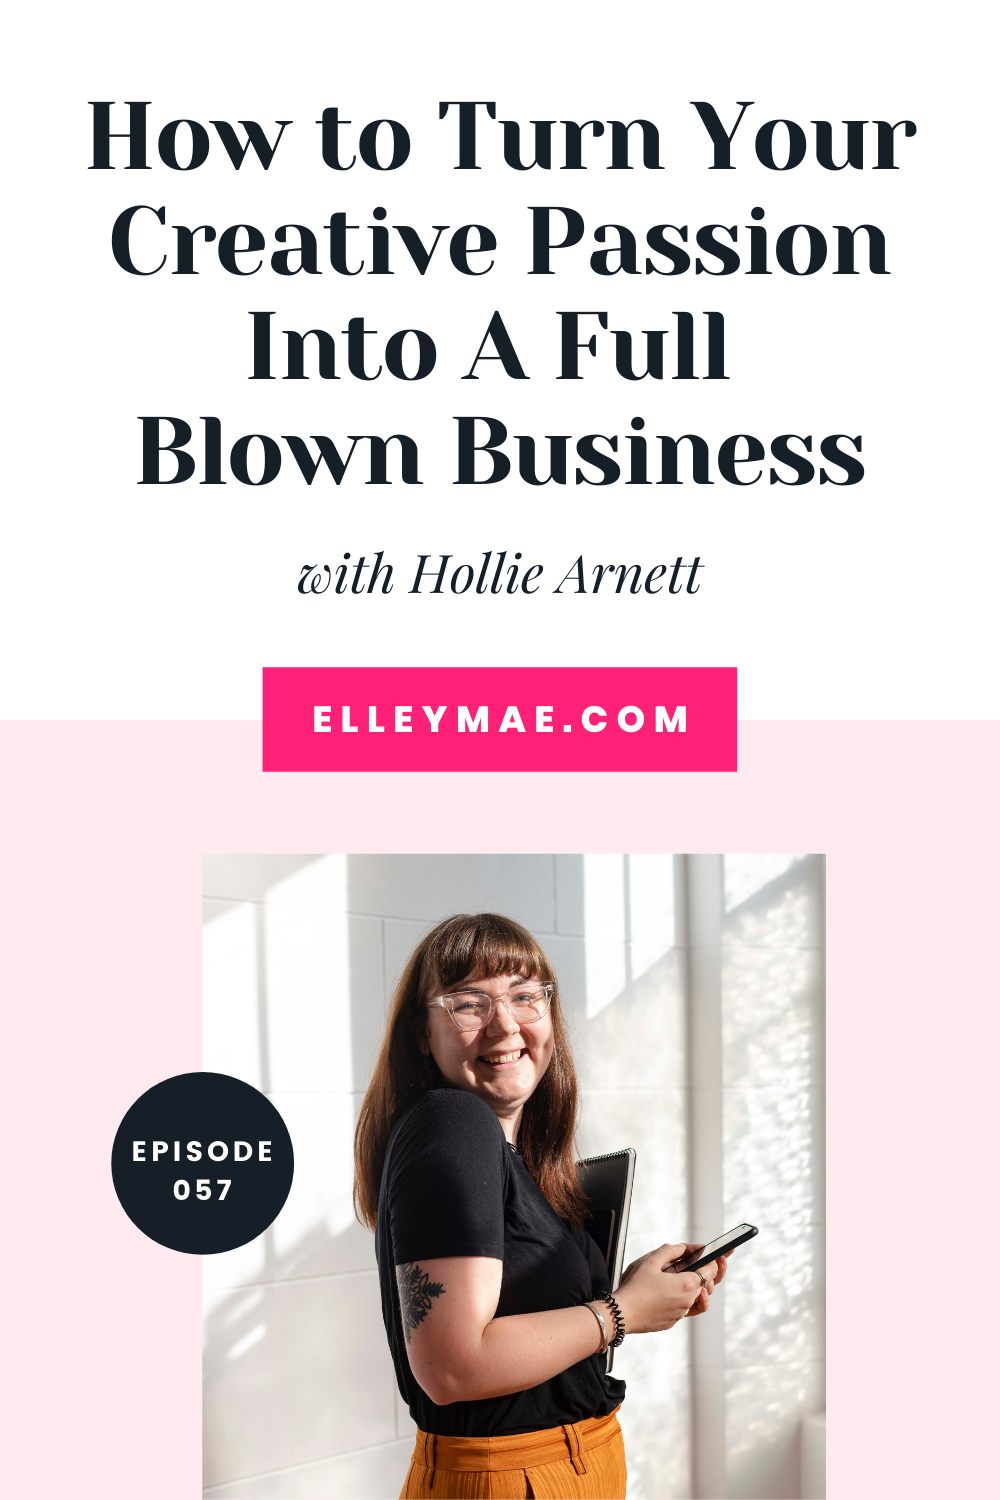 057. Turning Your Creative Passion Into A Full Blown Business with Hollie Arnett